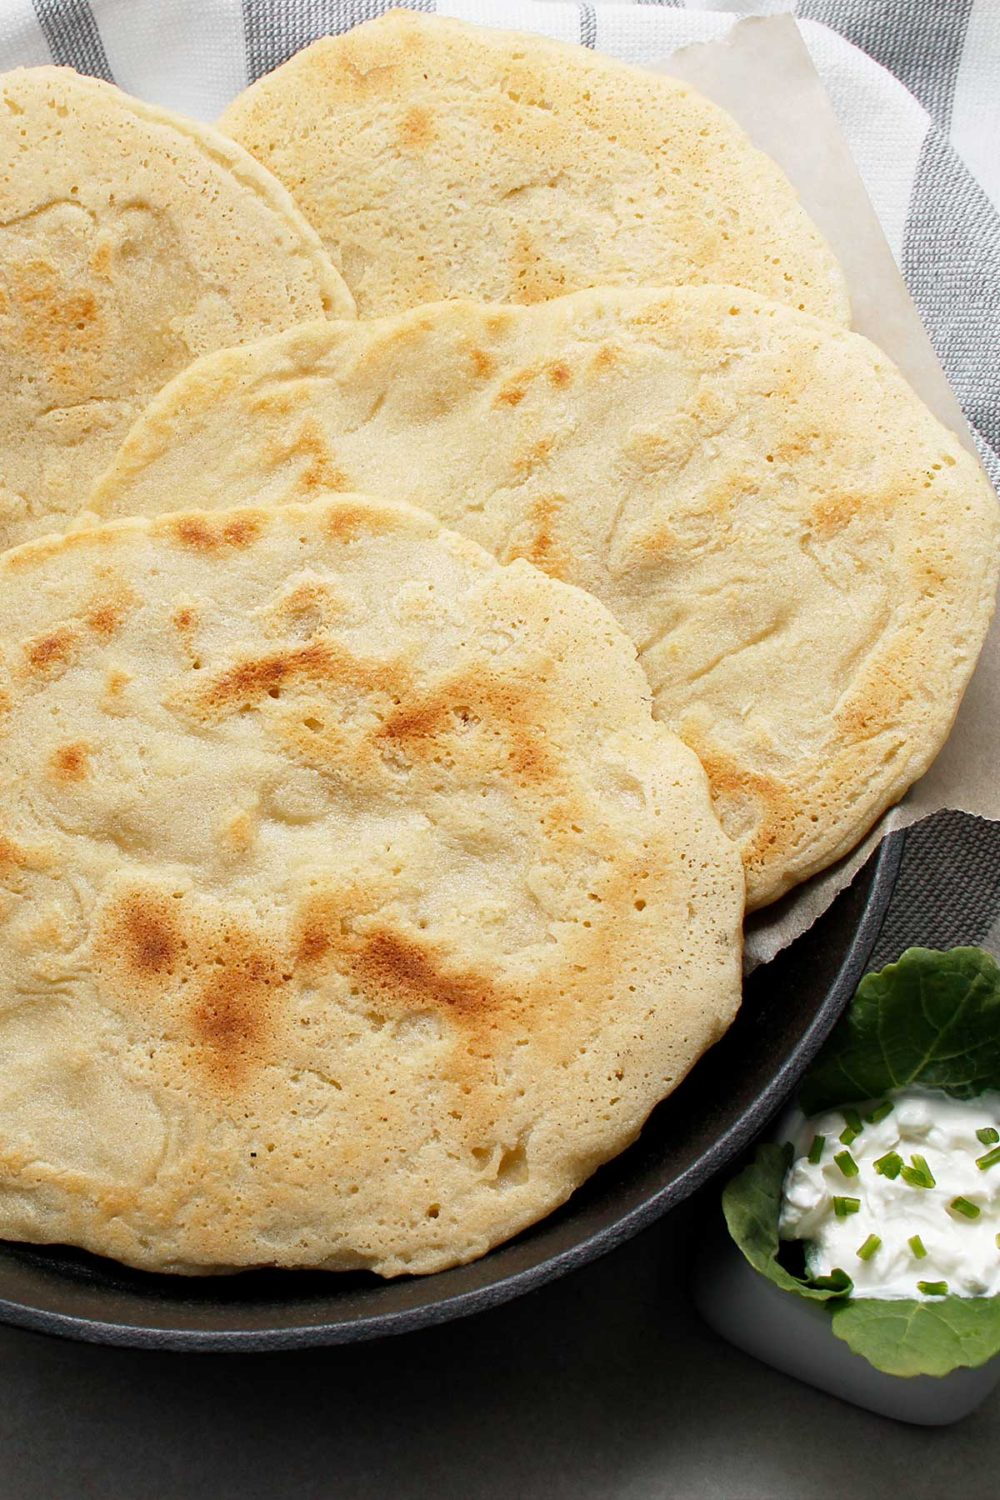 A few freshly baked GF naan breads in a cast iron skillet with dip on the side.